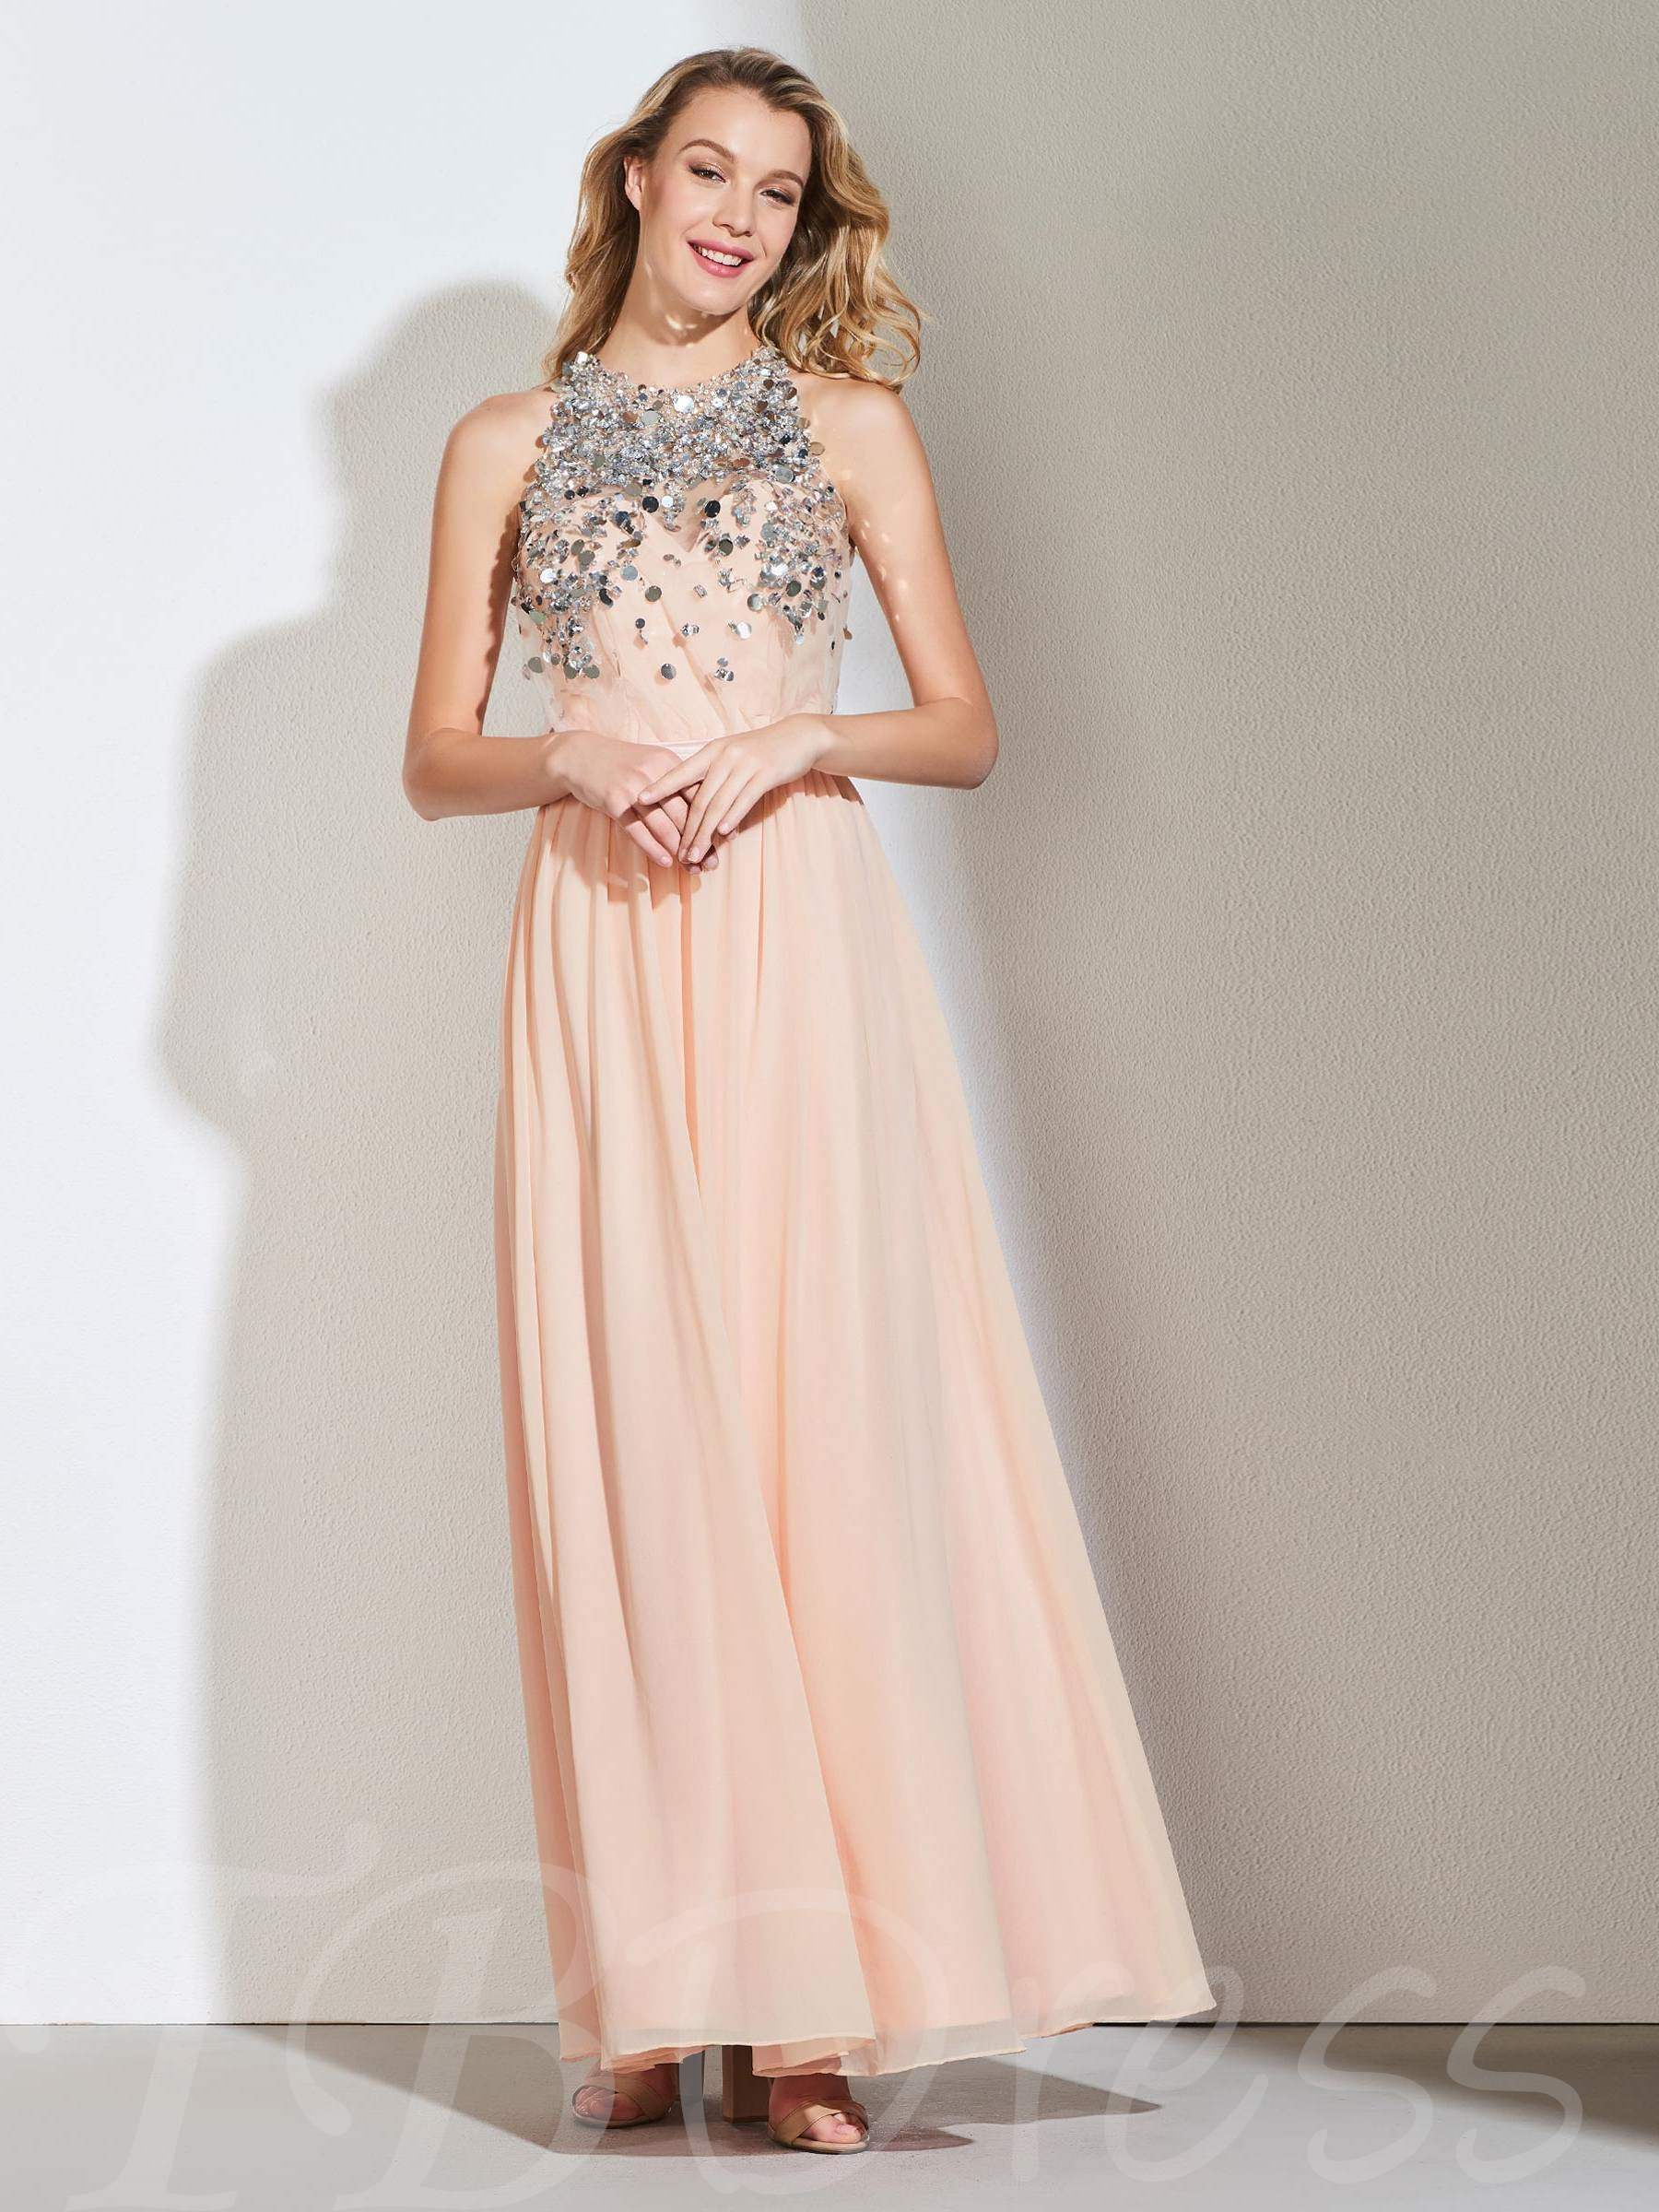 Buy A-Line Beading Halter Sequins Sashes Evening Dress, Spring,Summer,Fall,Winter, 13364669 for $154.86 in TBDress store